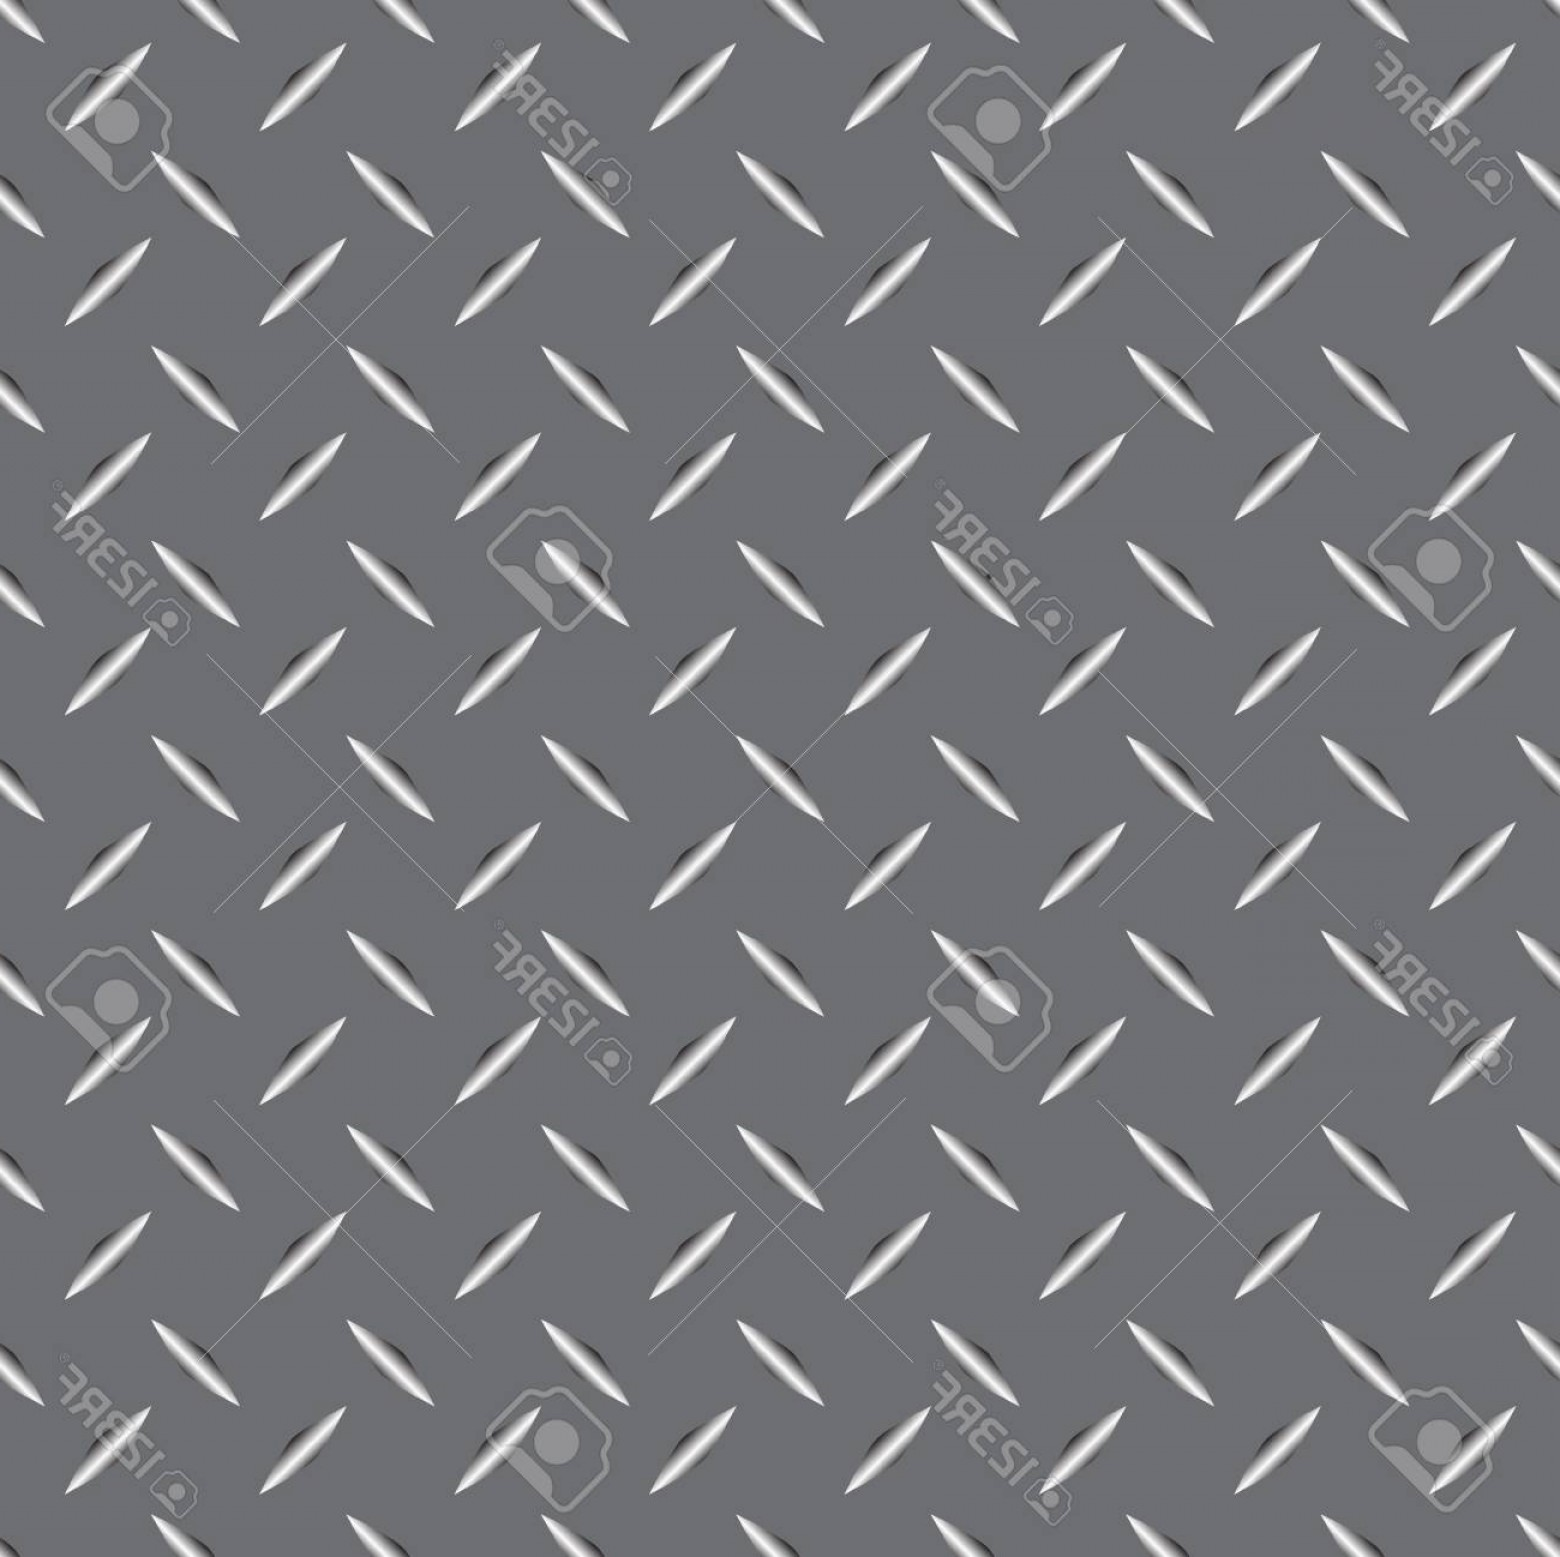 Diamond Plate Vector Pattern: Photostock Vector Background Of Metal Diamond Plate In Silver Color Seamless